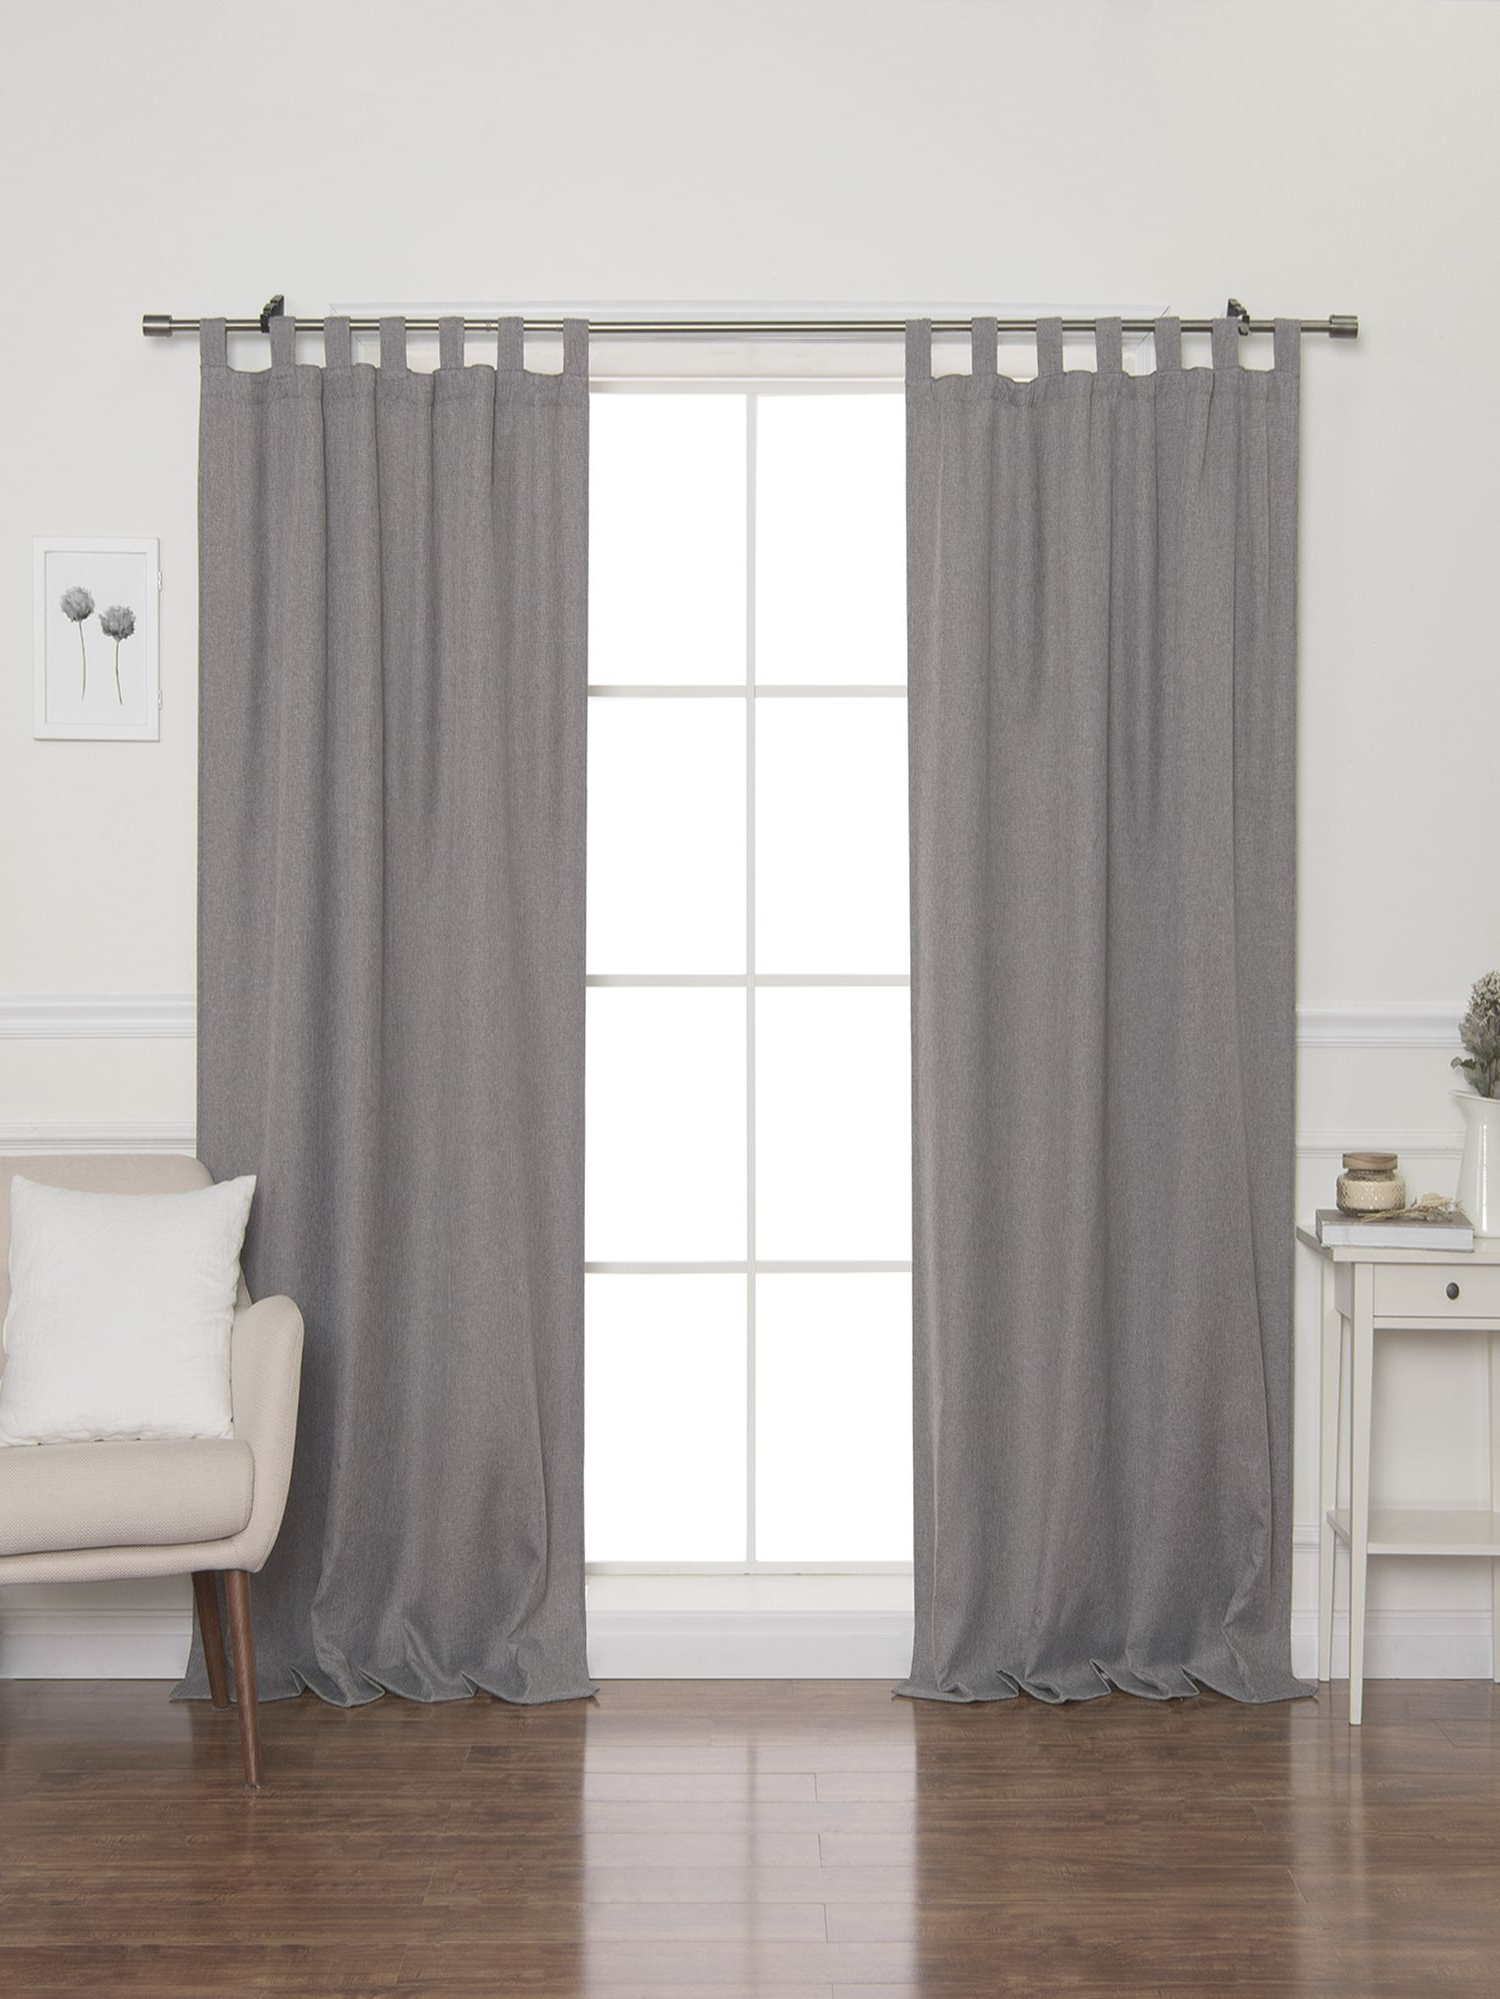 Faux Linen Blackout Curtains In Most Current Faux Linen Blackout Tab Top Curtain (View 11 of 20)